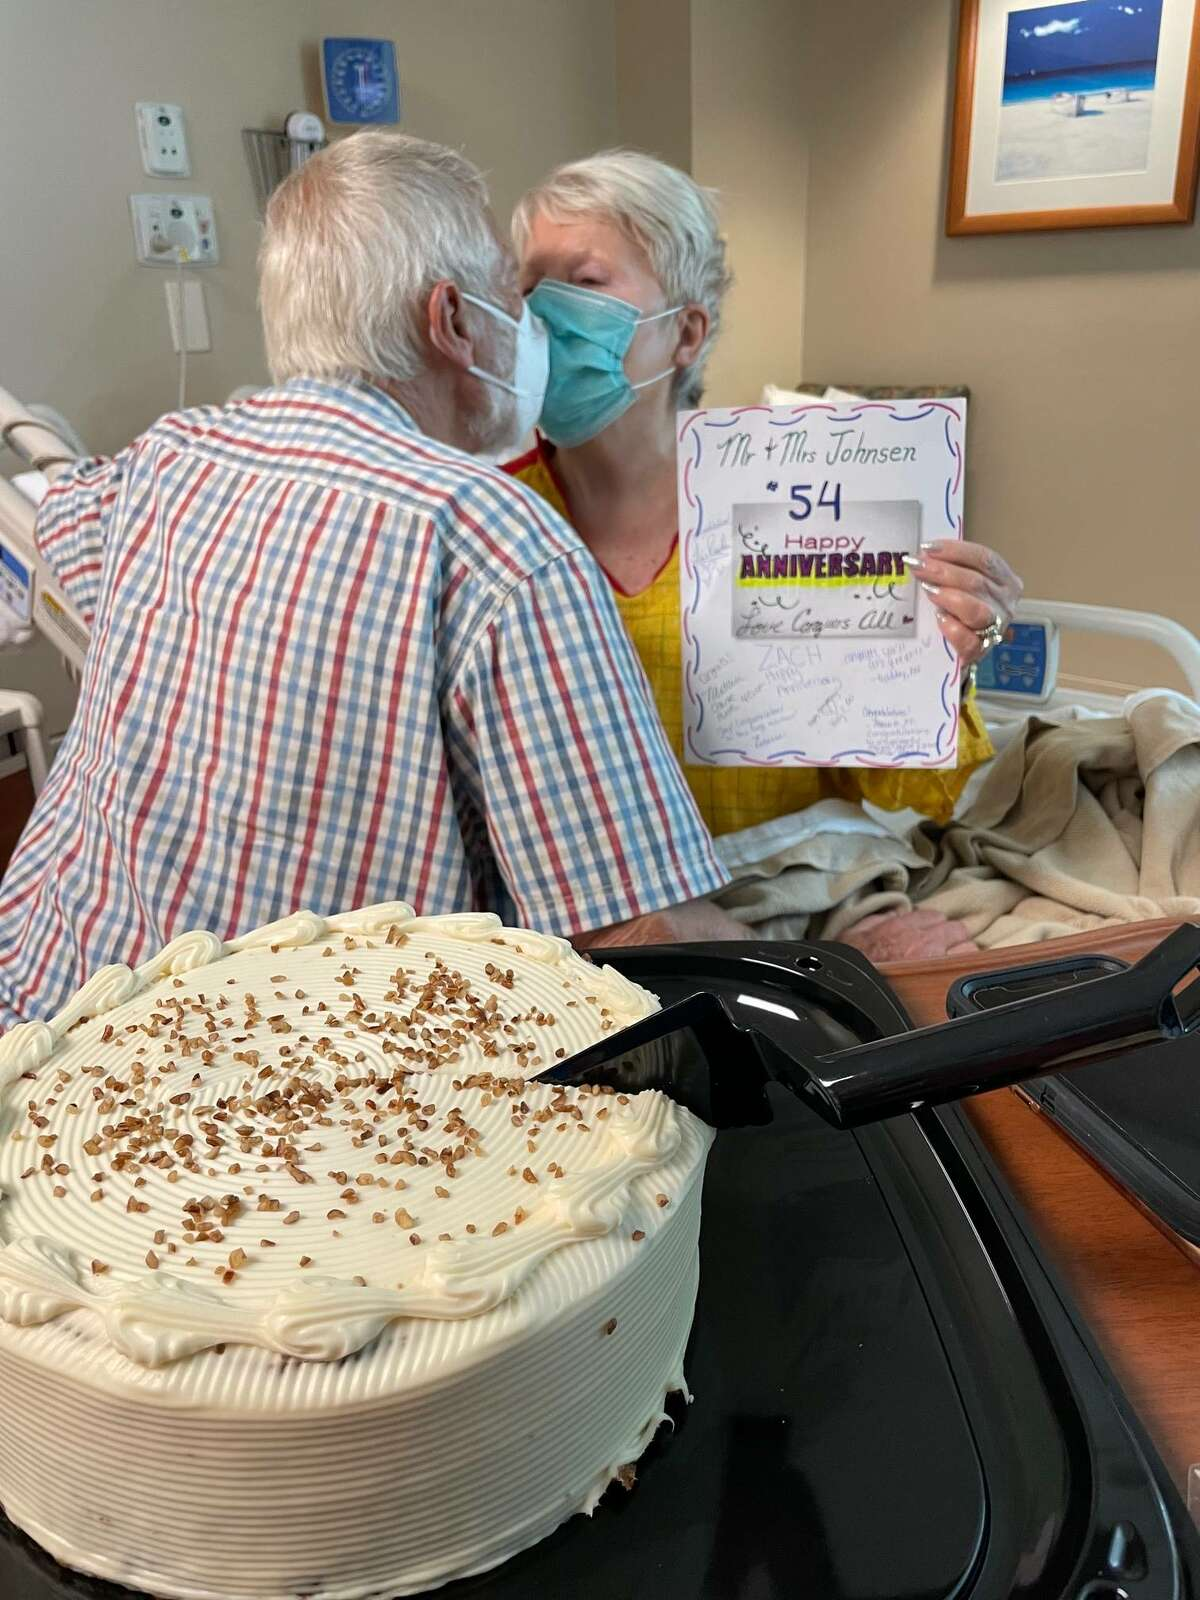 """Roy and Sylvi Johnsen, of League City, celebrate their 54th wedding anniversary Aug. 26 at HCA Houston Healthcare Clear Lake. Admitted for right-side weakness, Sylvi underwent testing and was discharged shortly afterward """"in good health,"""" according to the hospital."""